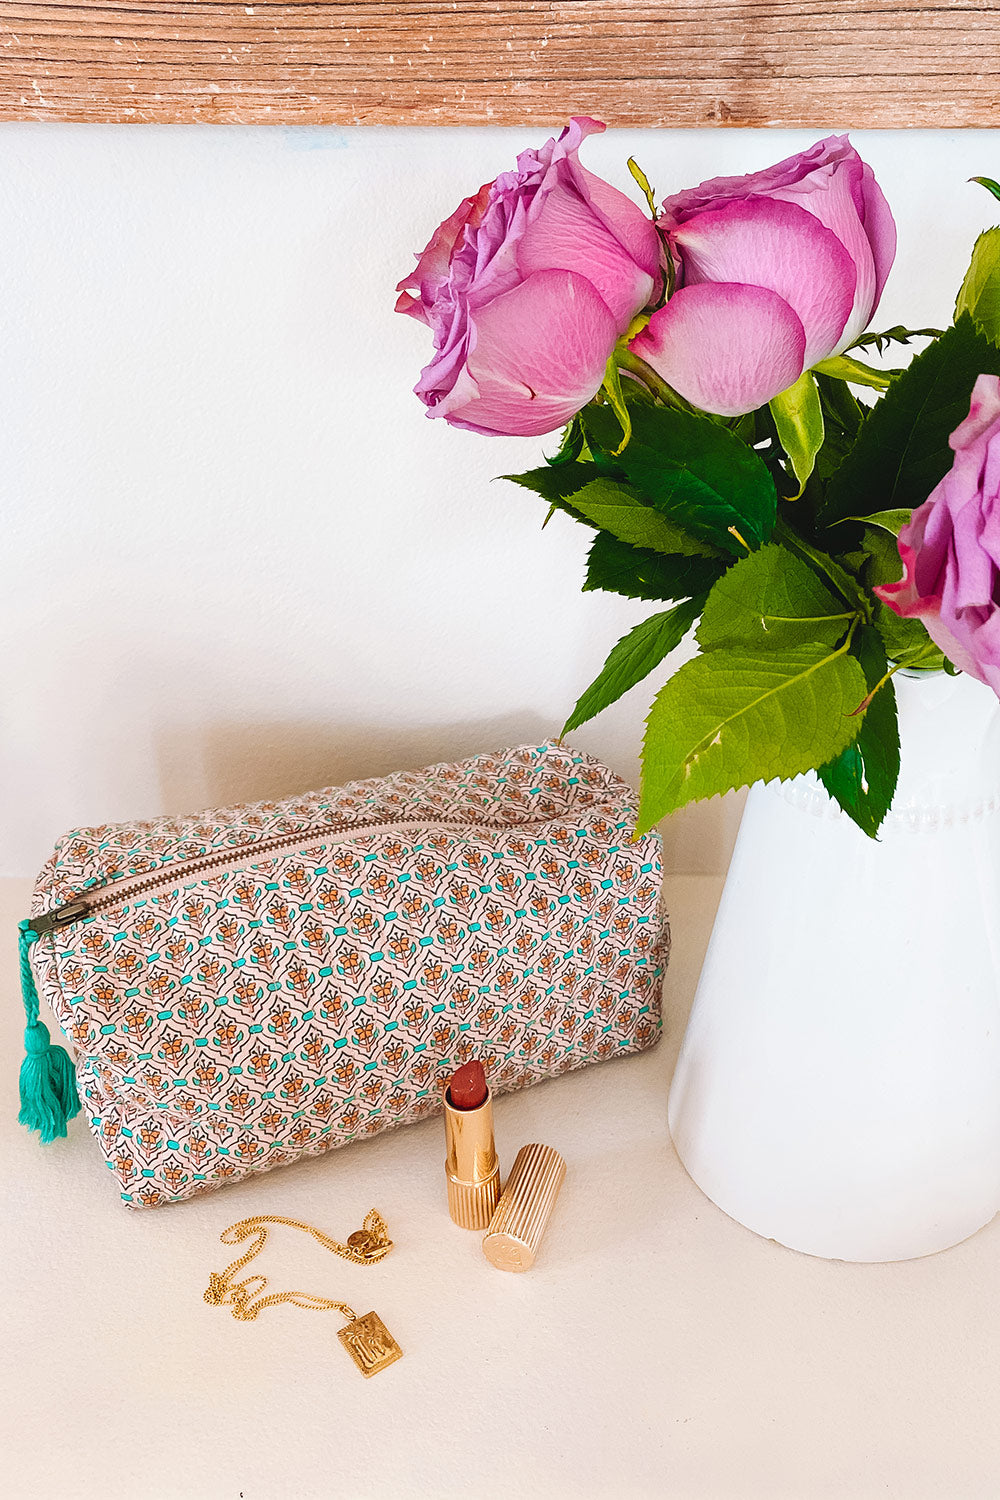 Fleetwood Revive Beauty Bag in Tile Blush